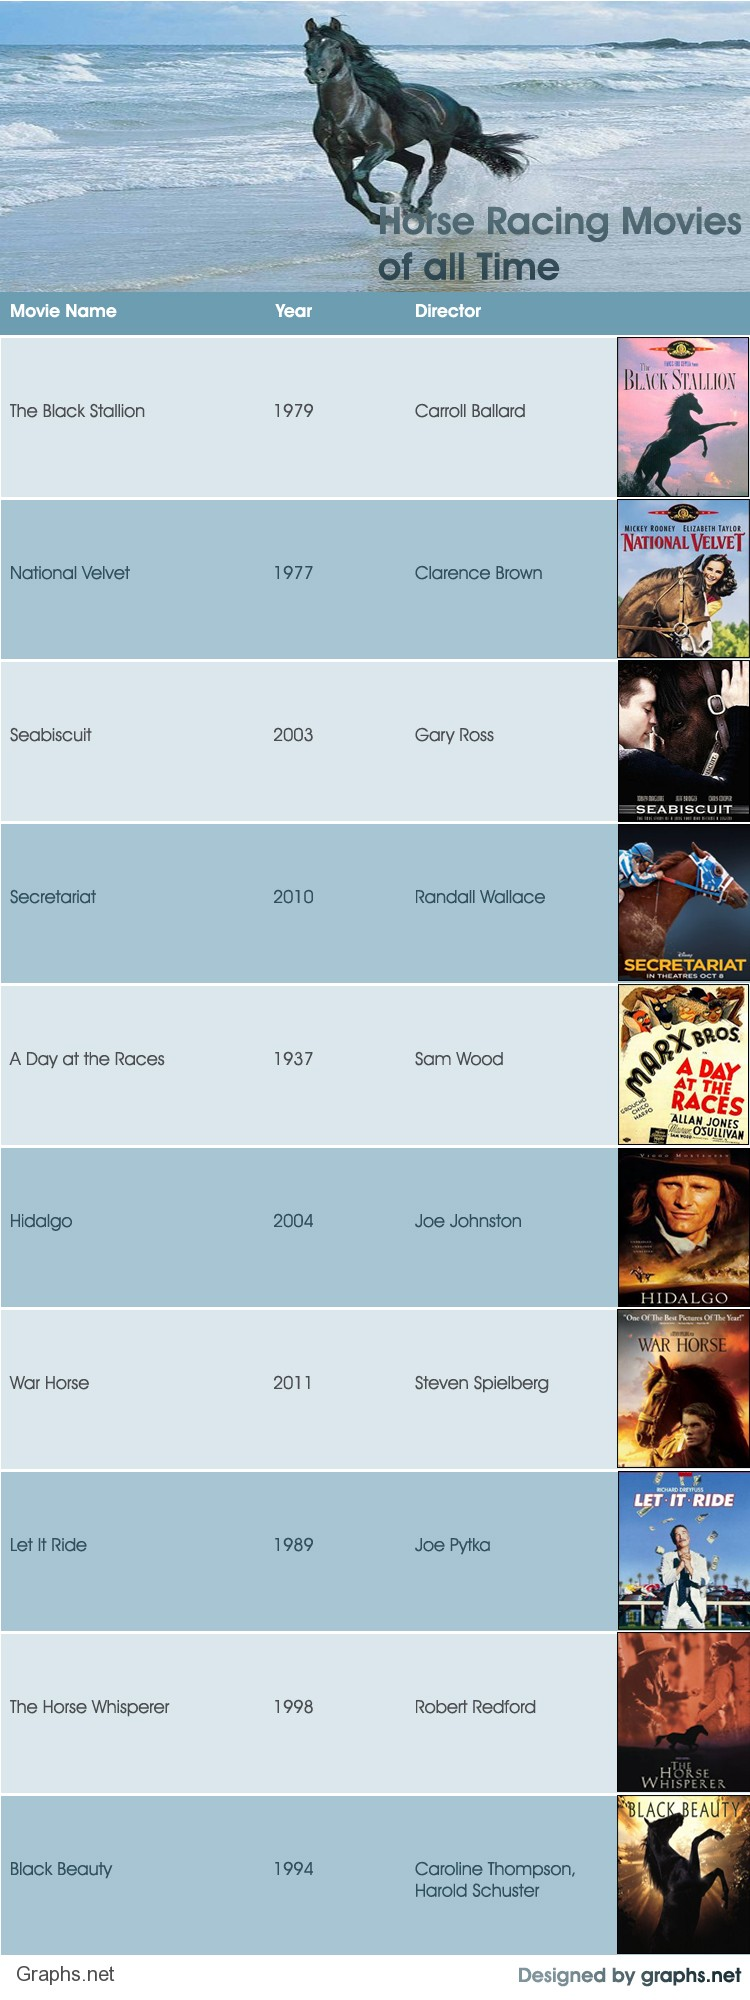 Top Horse Racing Movies of all Time